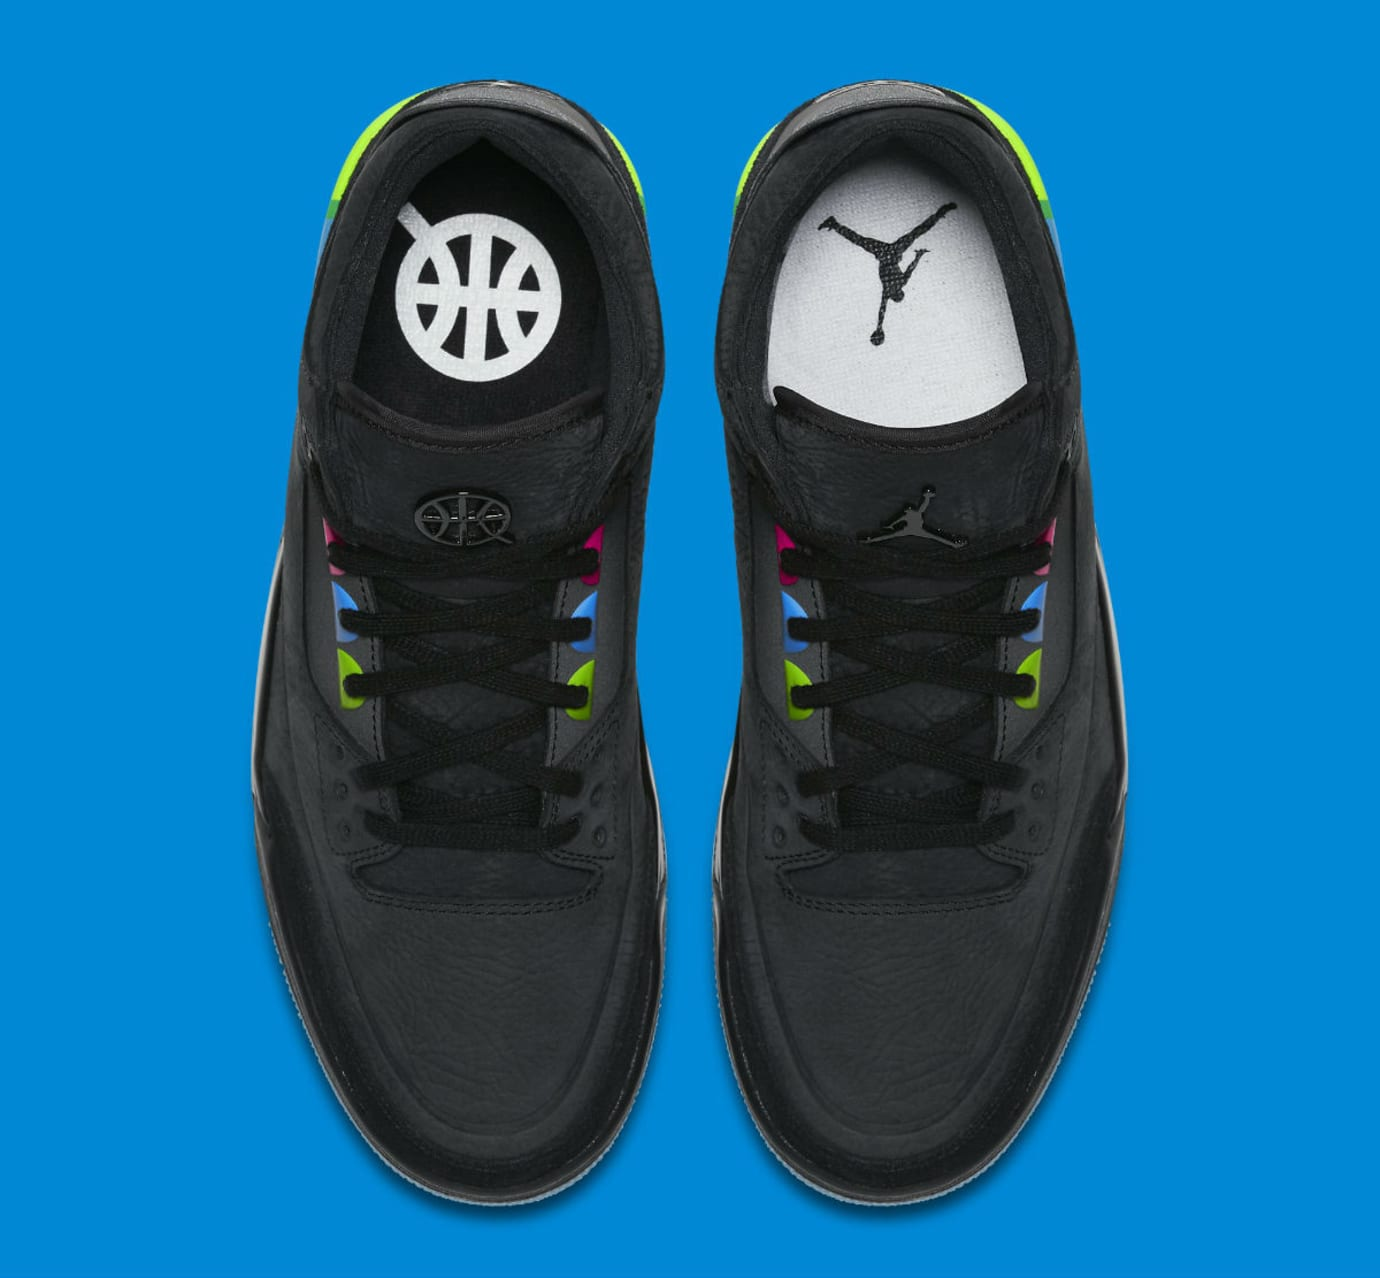 Air Jordan 3 III Quai 54 Release Date AT9195-001 Top